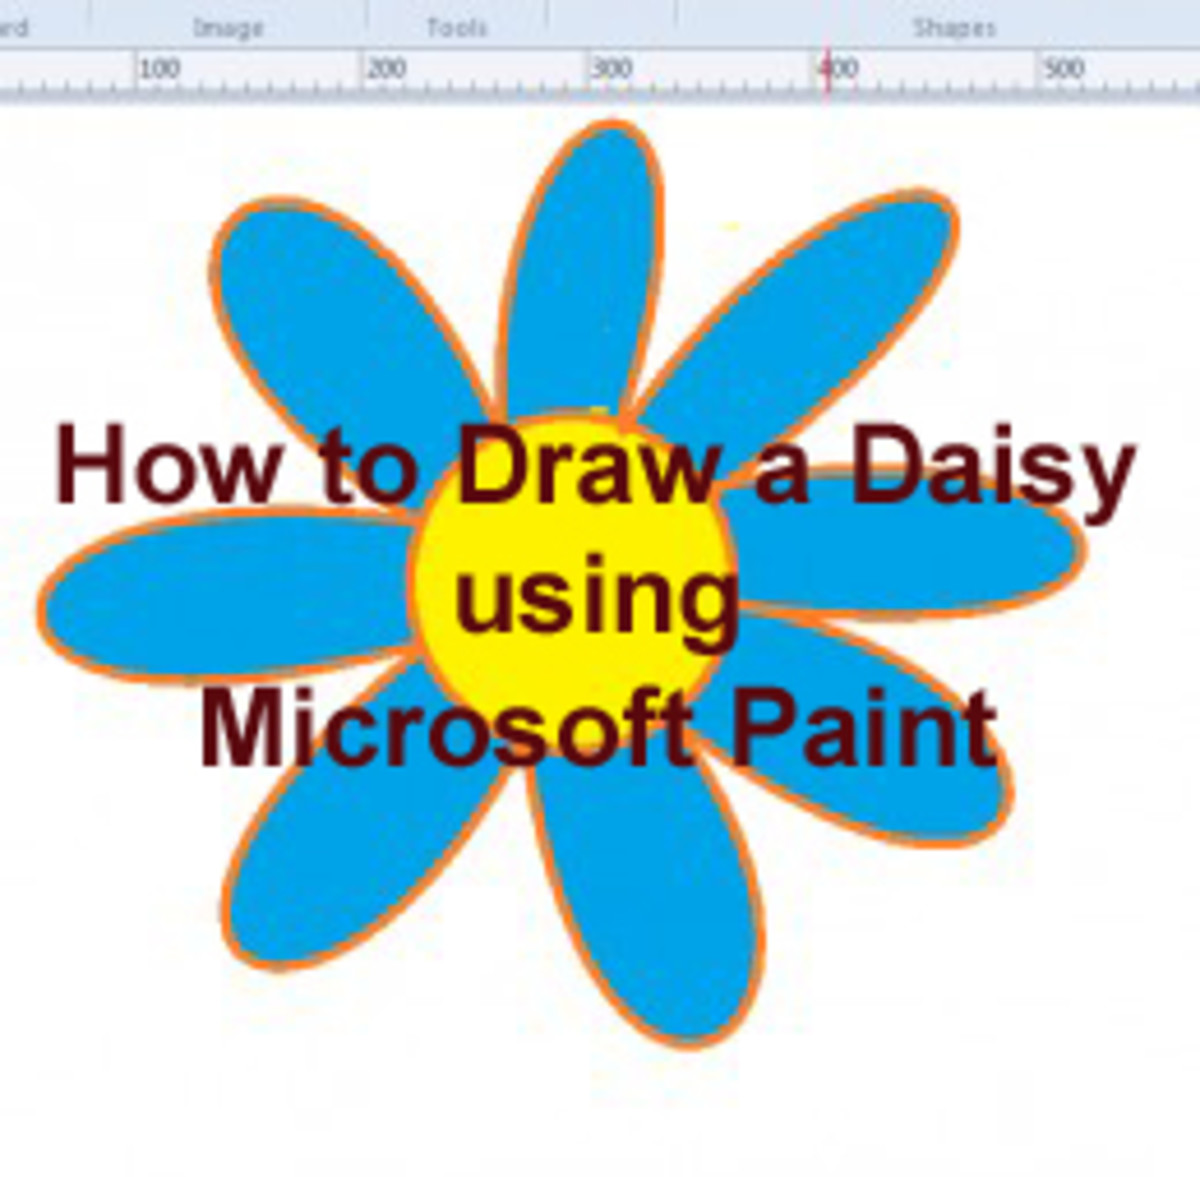 How to Draw and Color Simple Images in Microsoft Paint